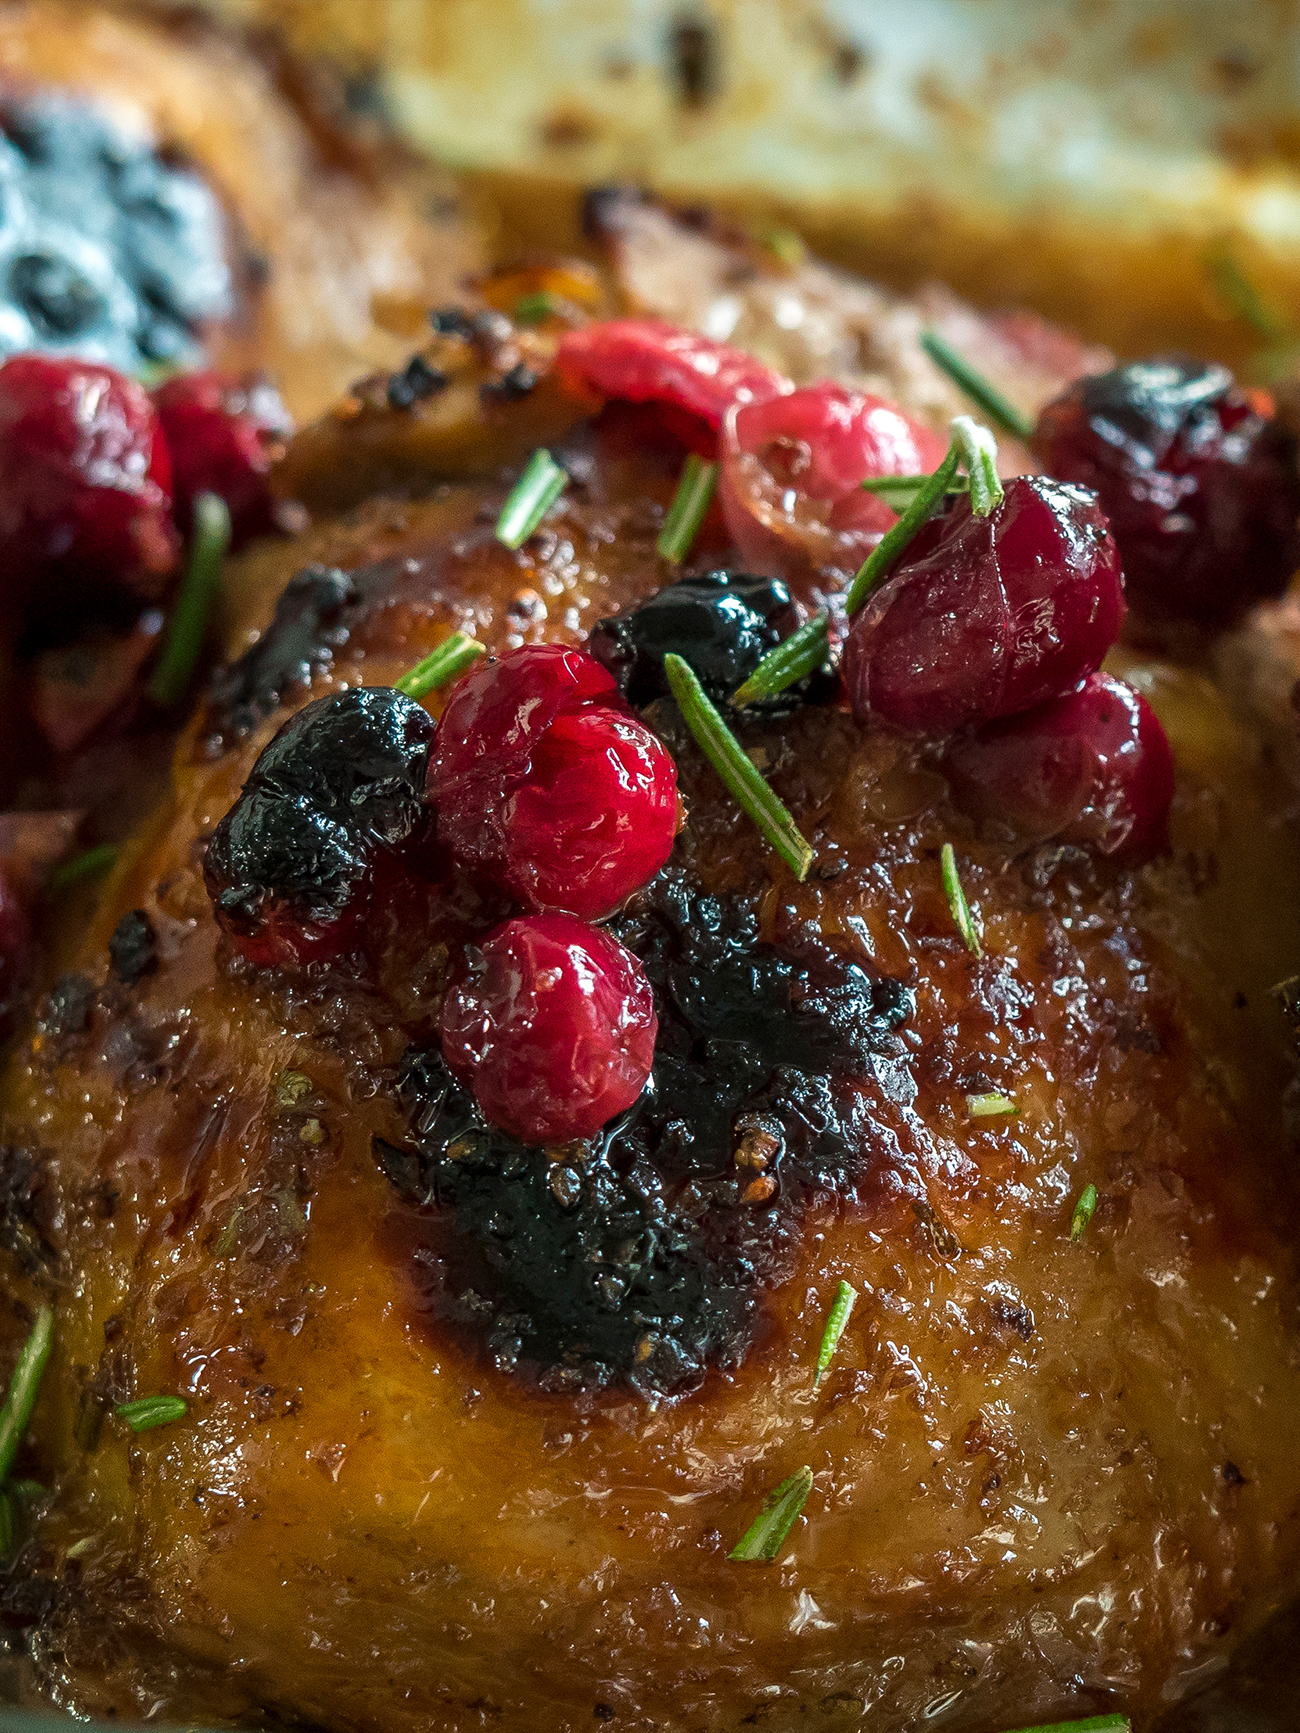 Roasted Balsamic Cranberry Chicken Vertical 2